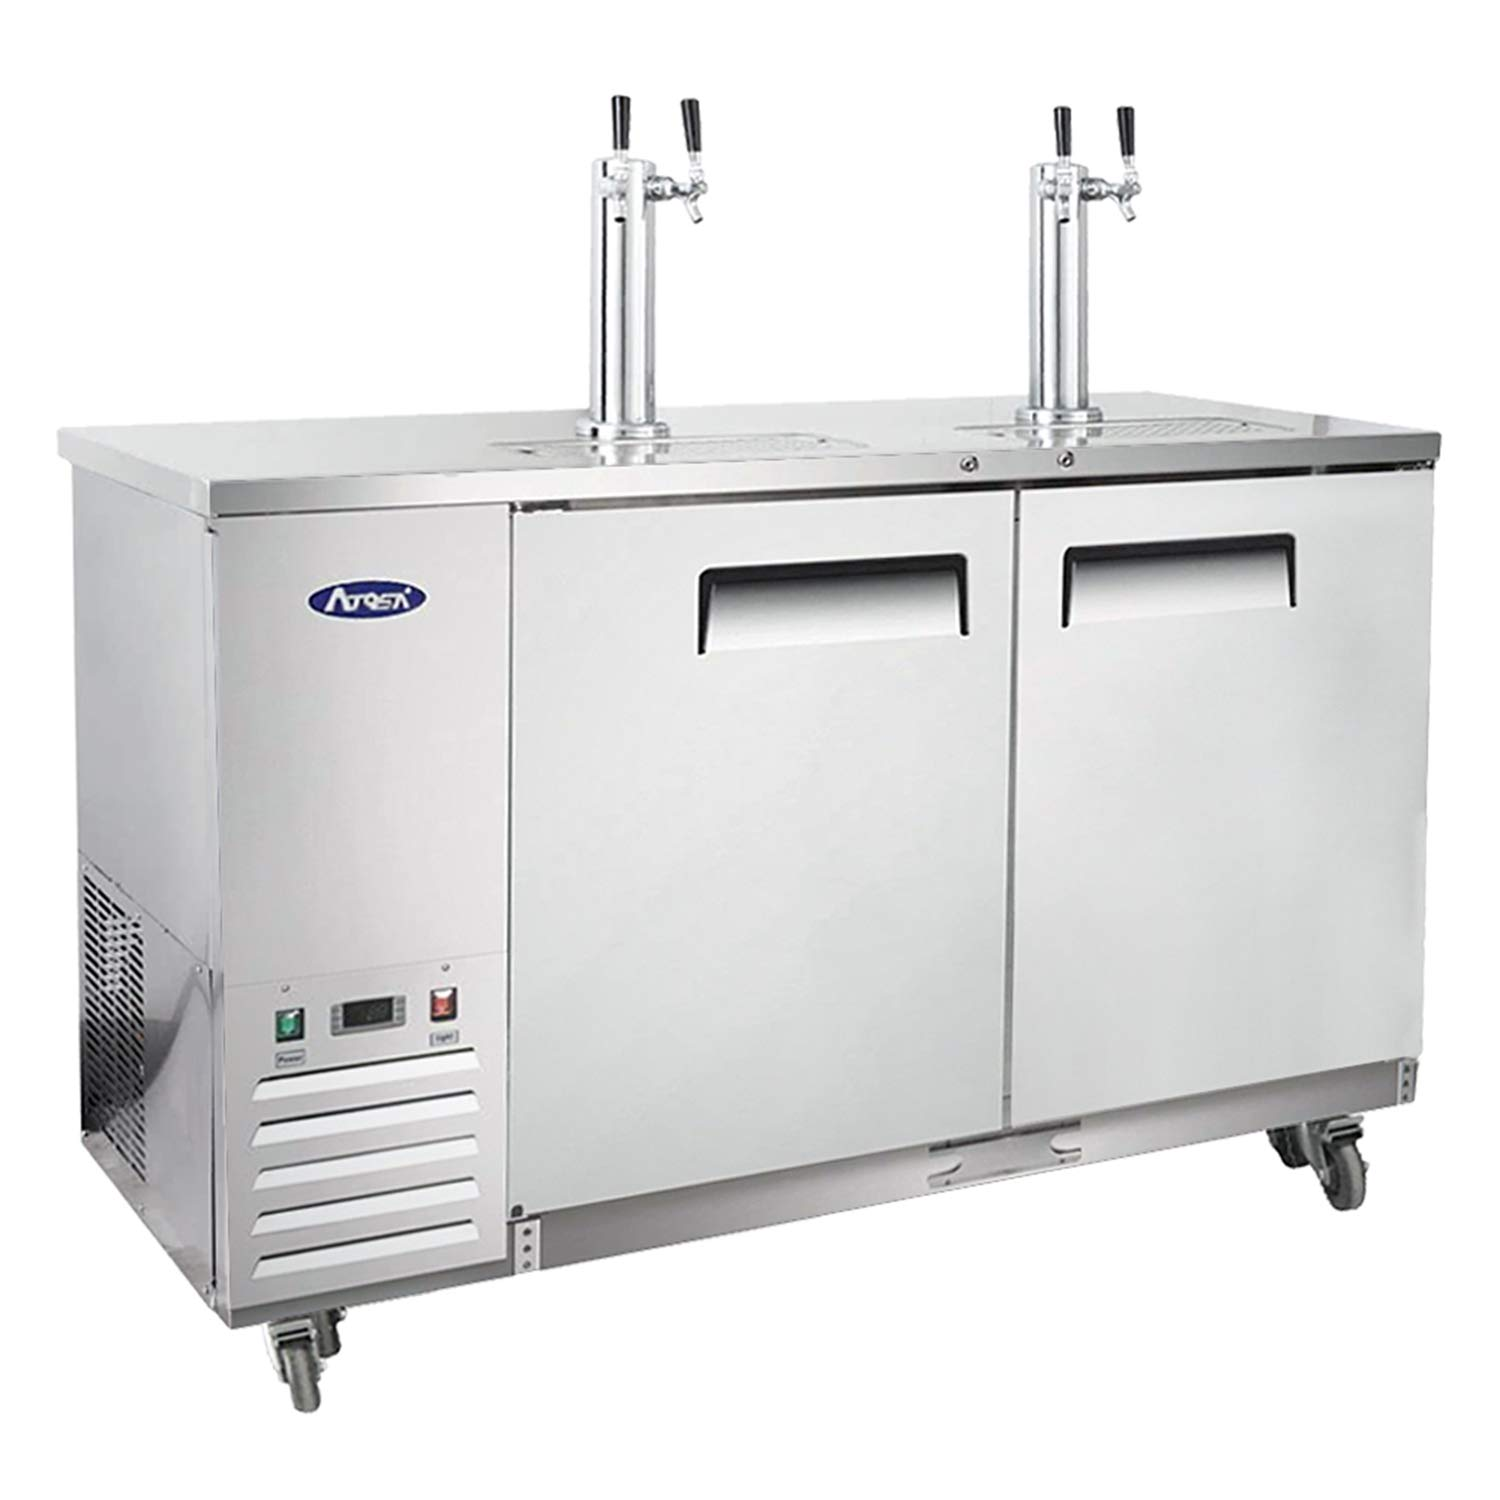 Kegerator Beer Dispenser with 2 Tap Towers, Atosa Commercial Keg Cooler Refrigerator, MKC58